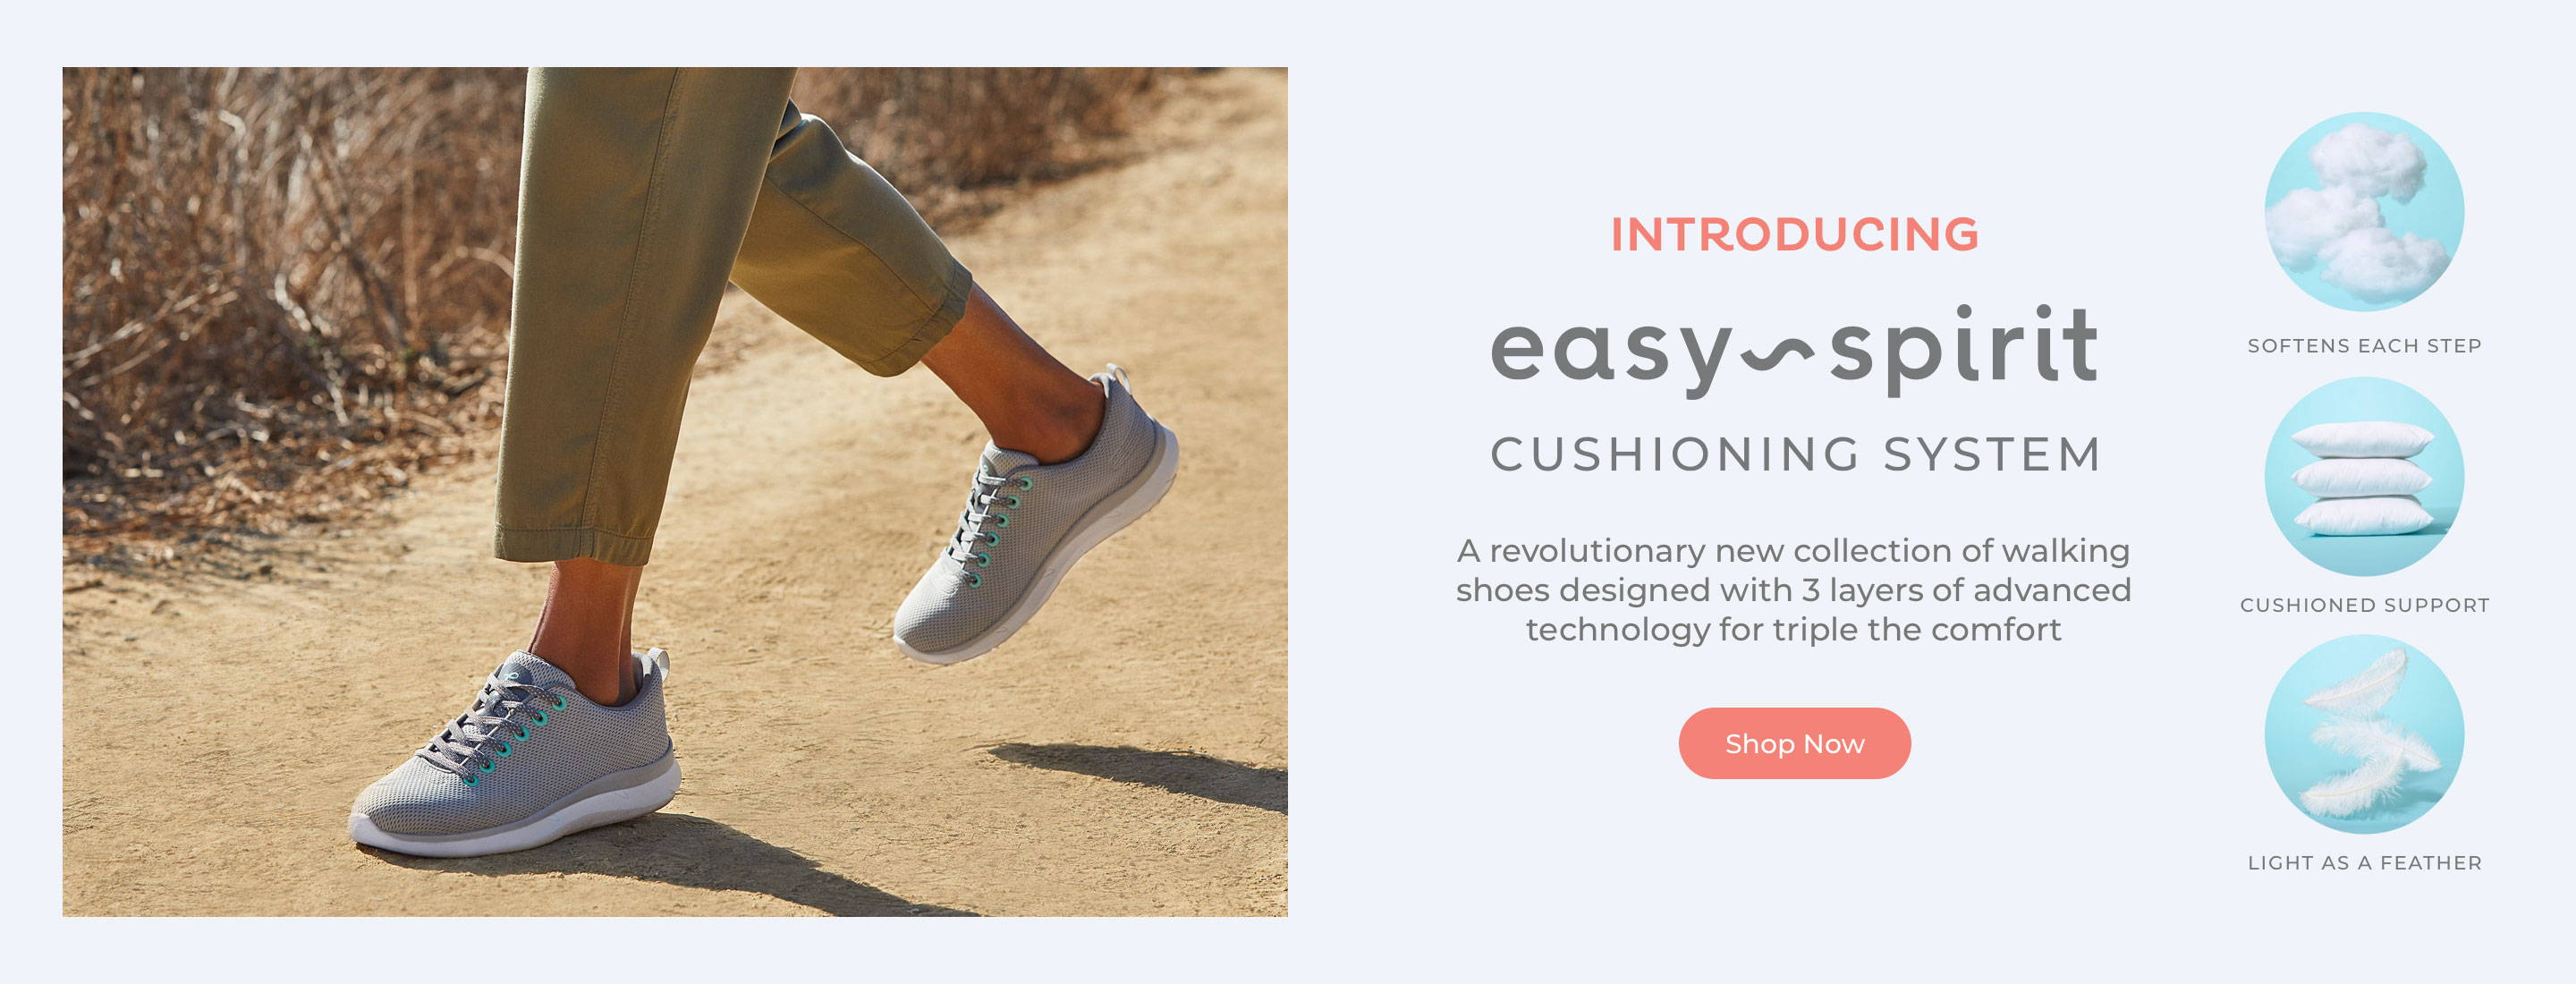 Easy Spirit Cushioning System